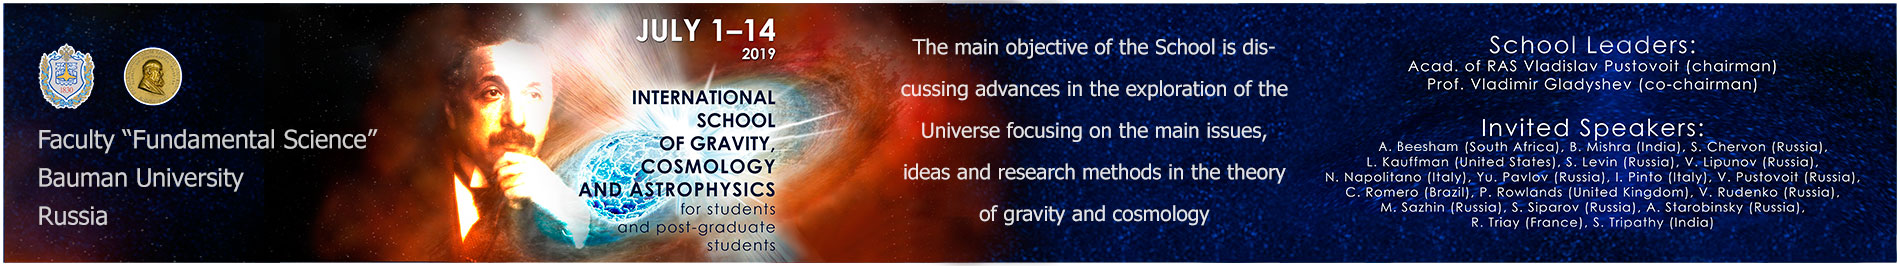 International School on Gravity, Cosmology and Astrophysics